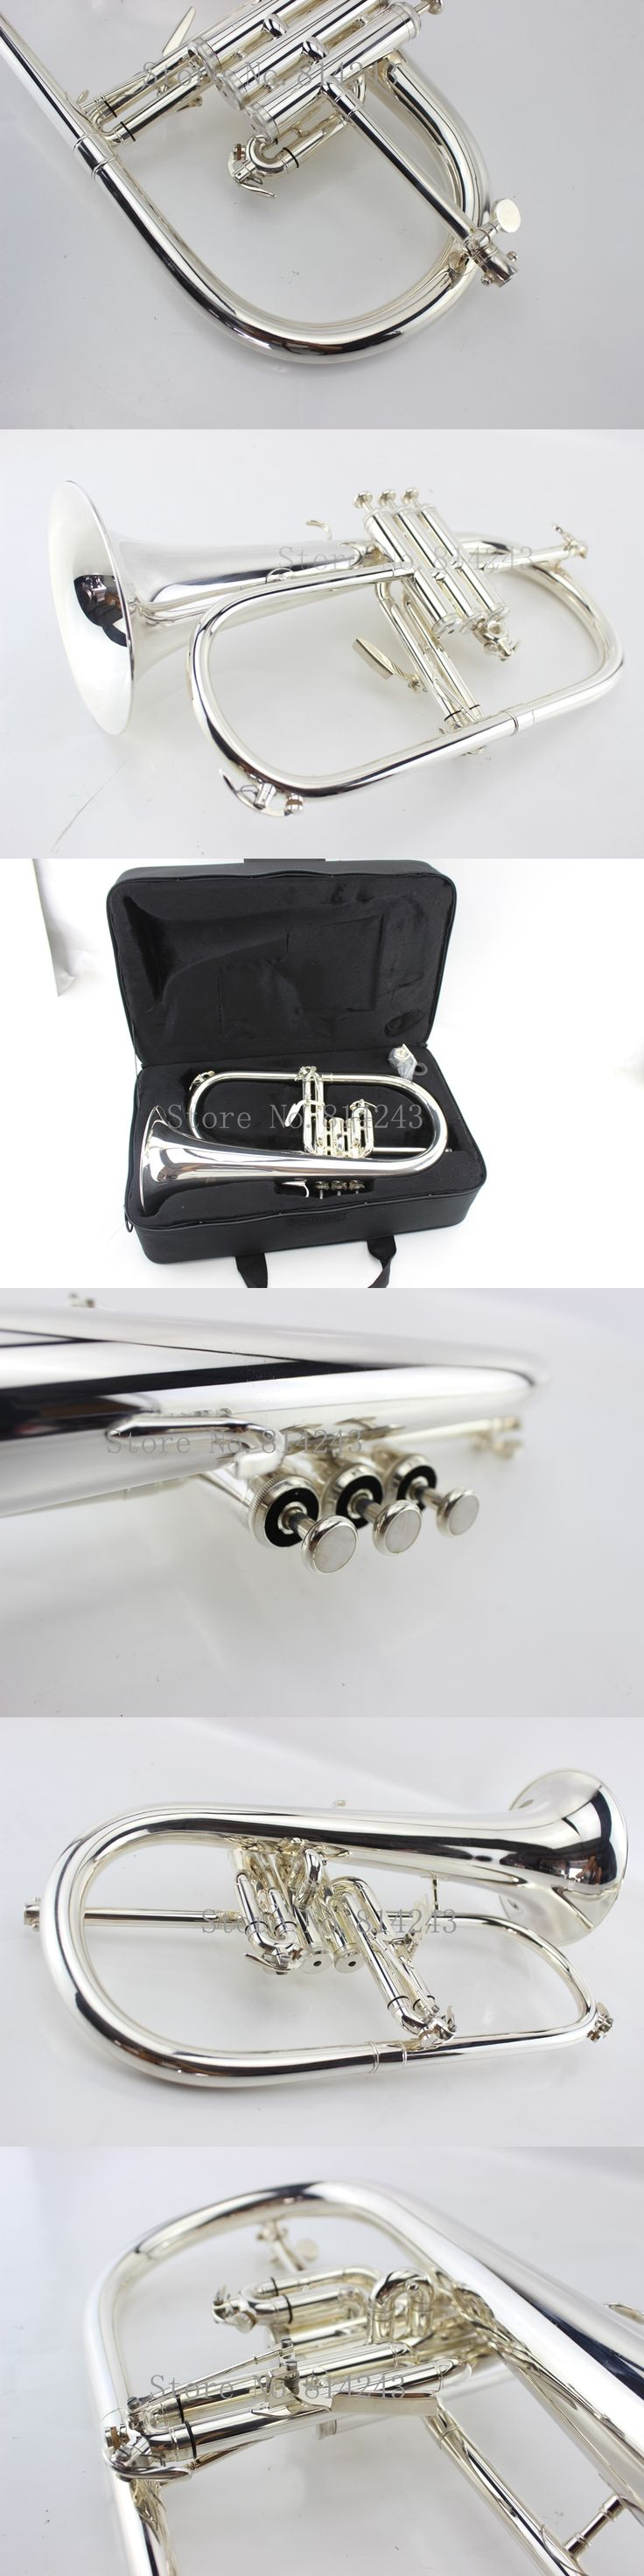 American Bach flugelhorn silver-plated B flat Bb professional trumpet Top musical instruments in Brass trompete horn